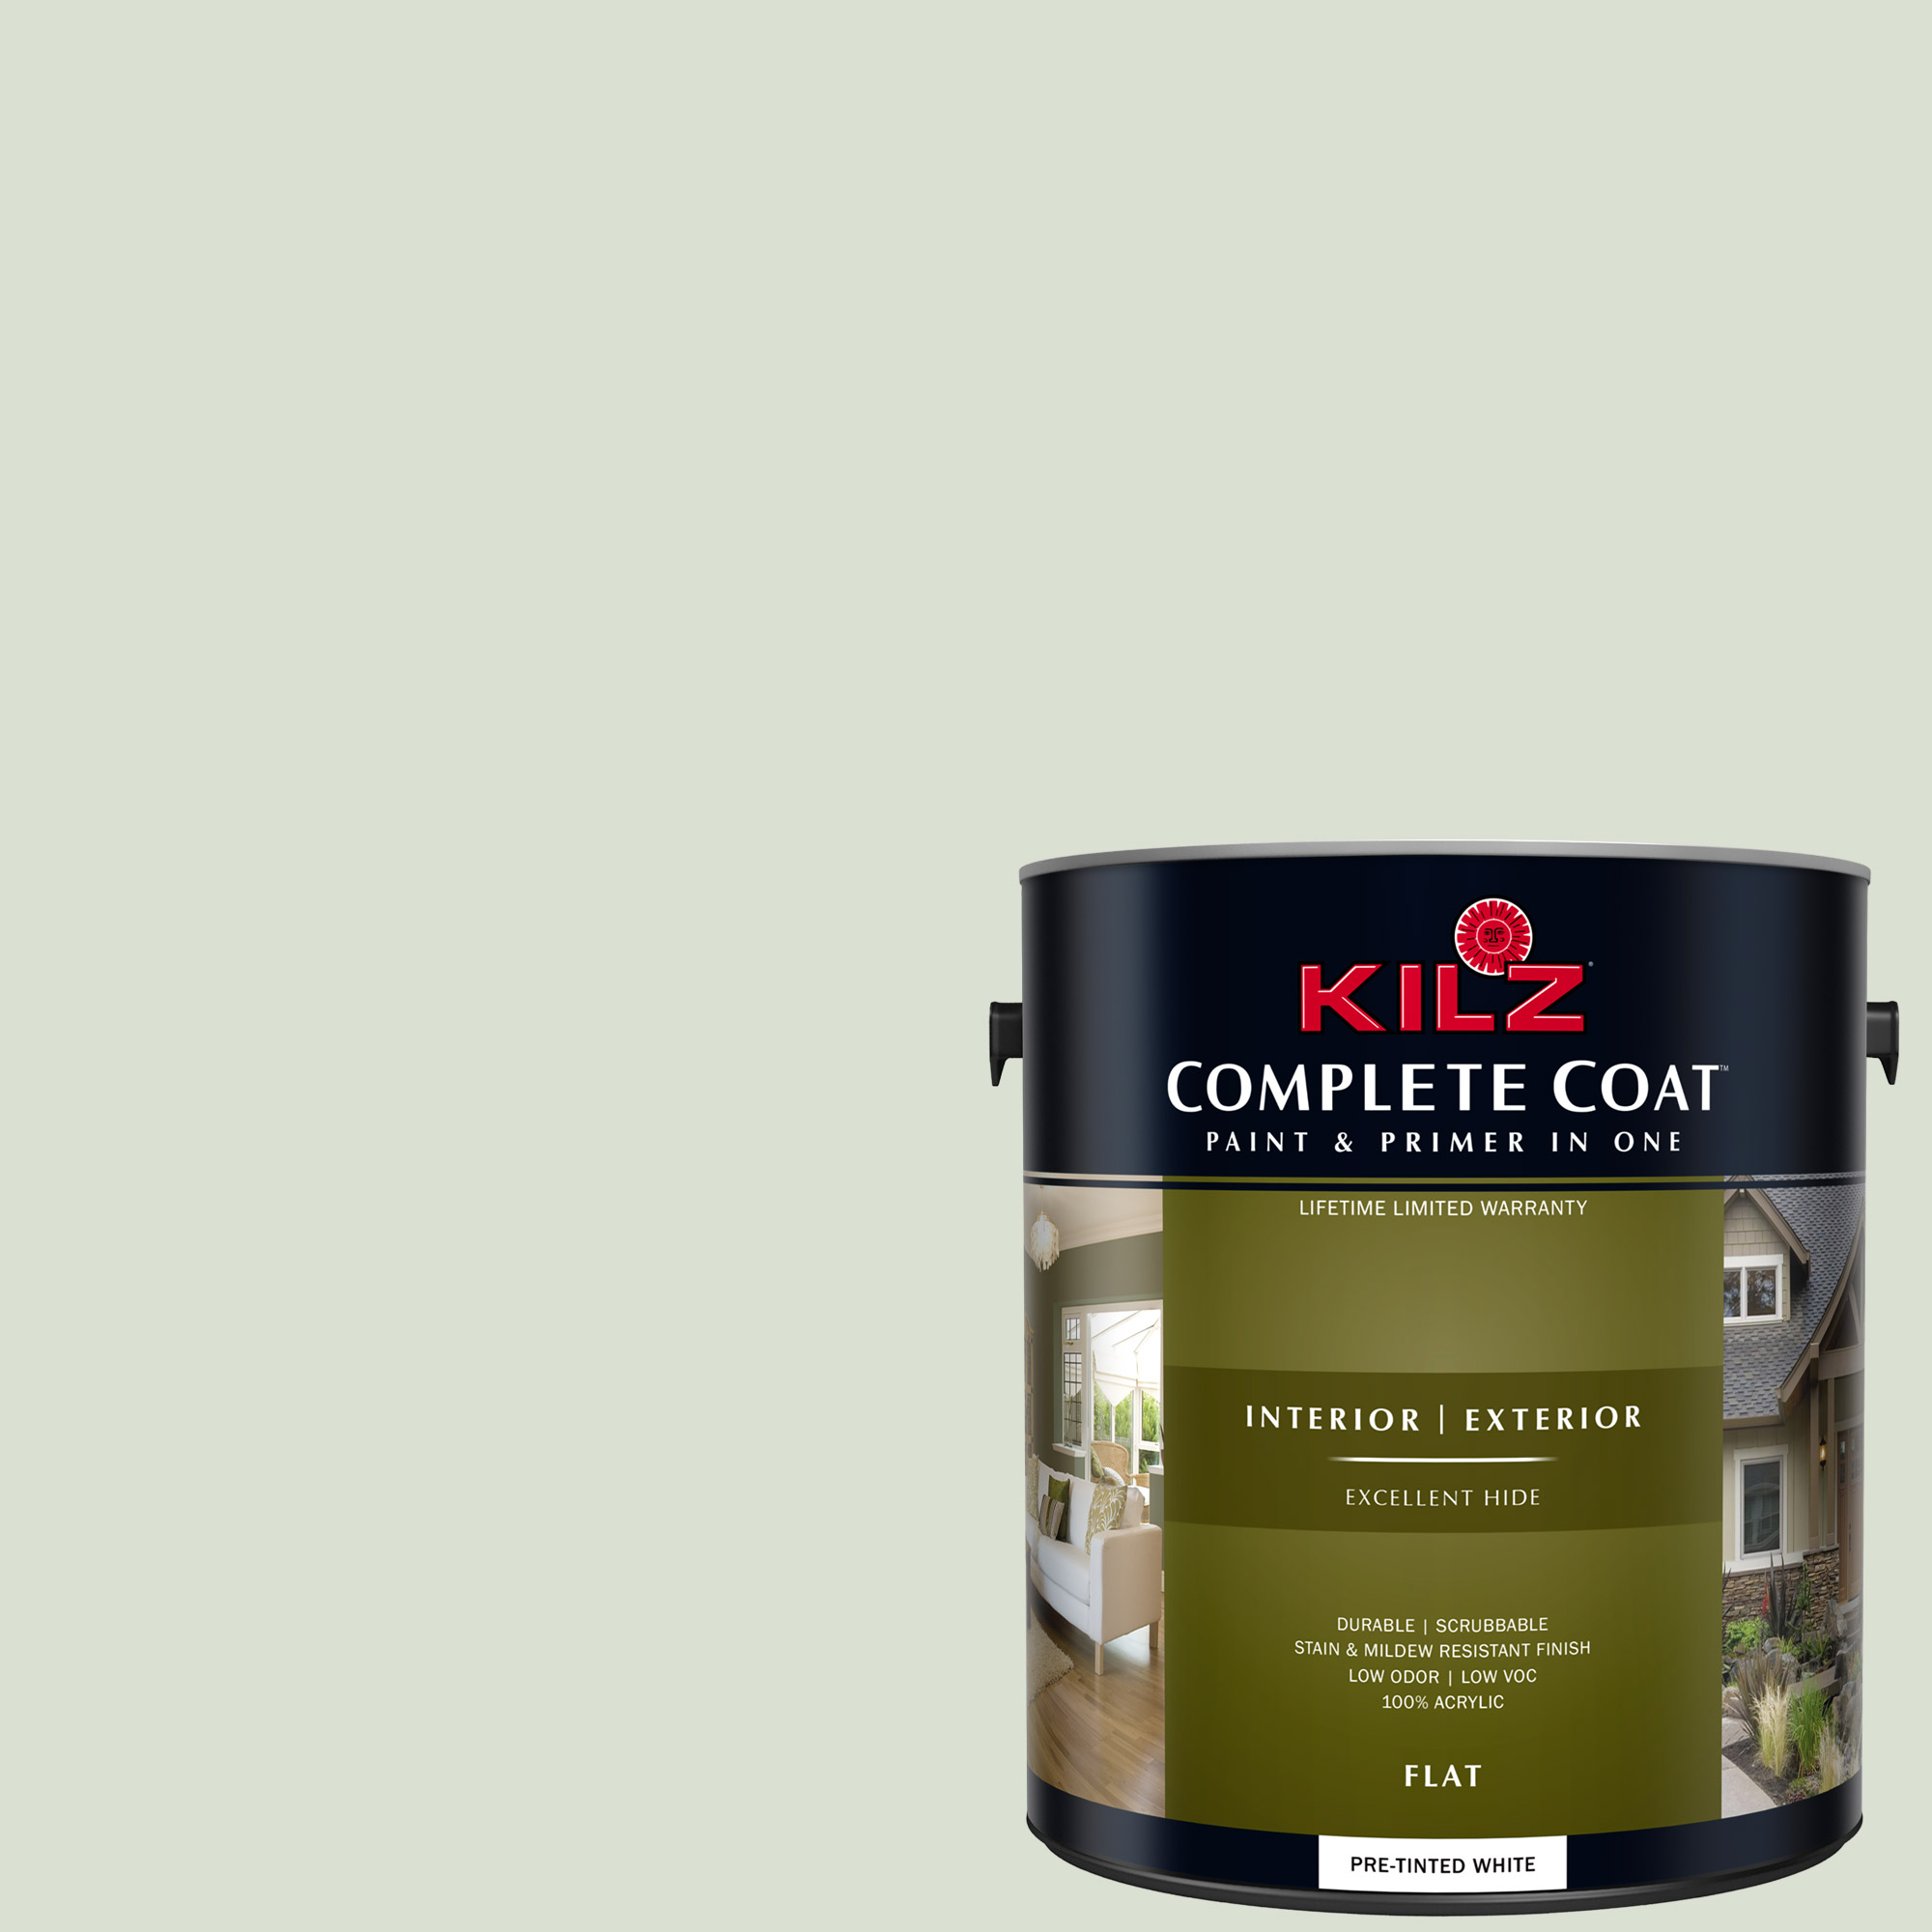 KILZ COMPLETE COAT Interior/Exterior Paint & Primer in One #LG190-02 Celadon Vase